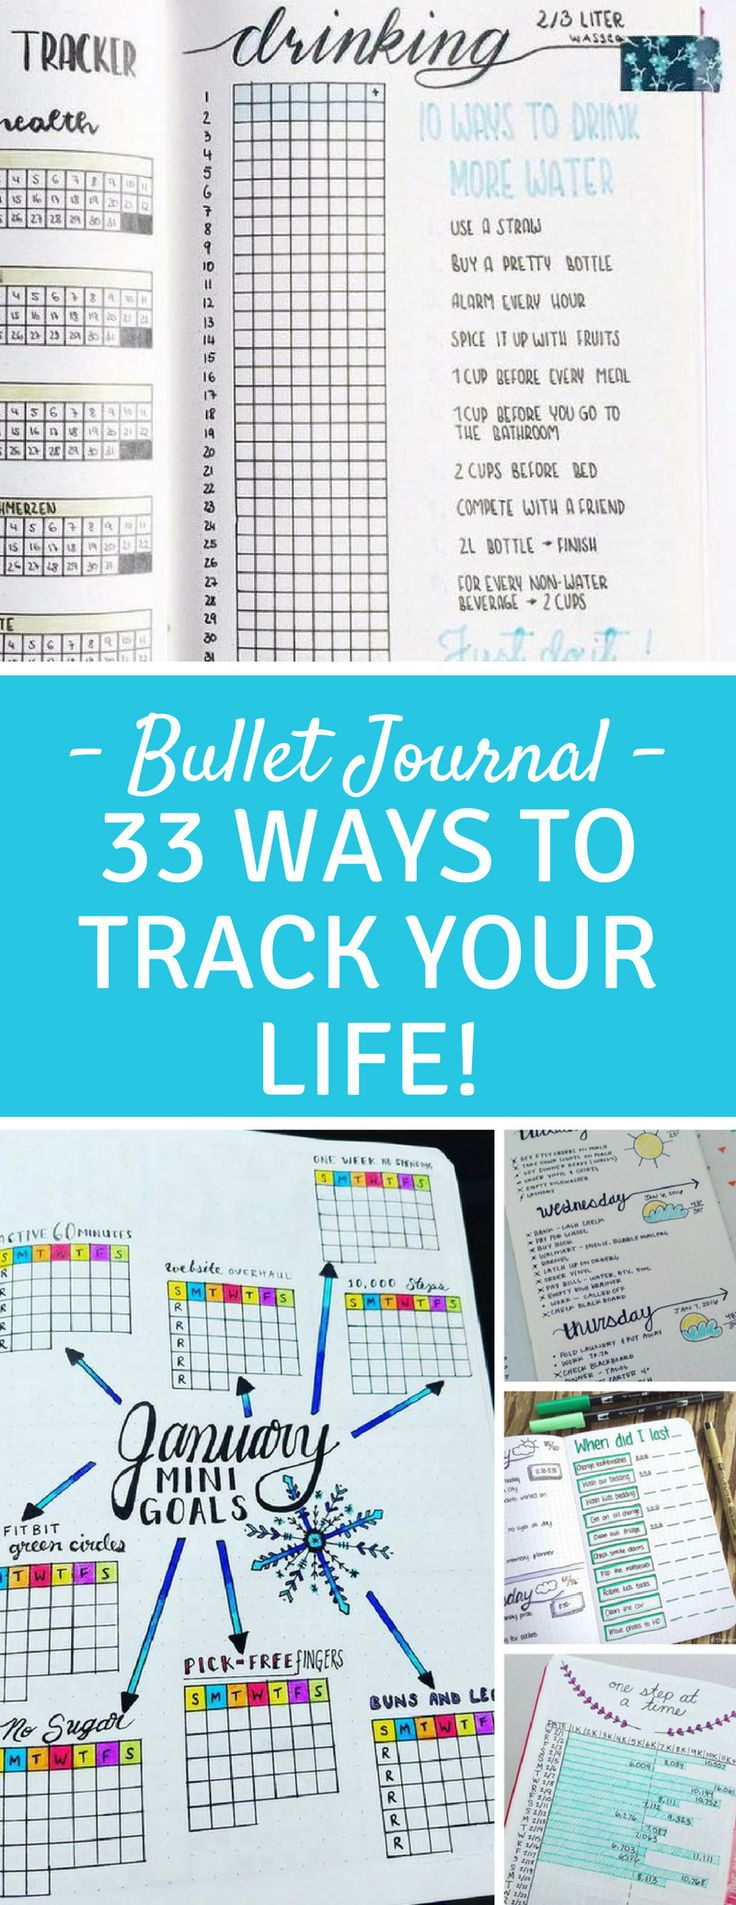 Bullet Journal Spreads - so many great ways to track everything from TV shows and books to water intake and weight loss!